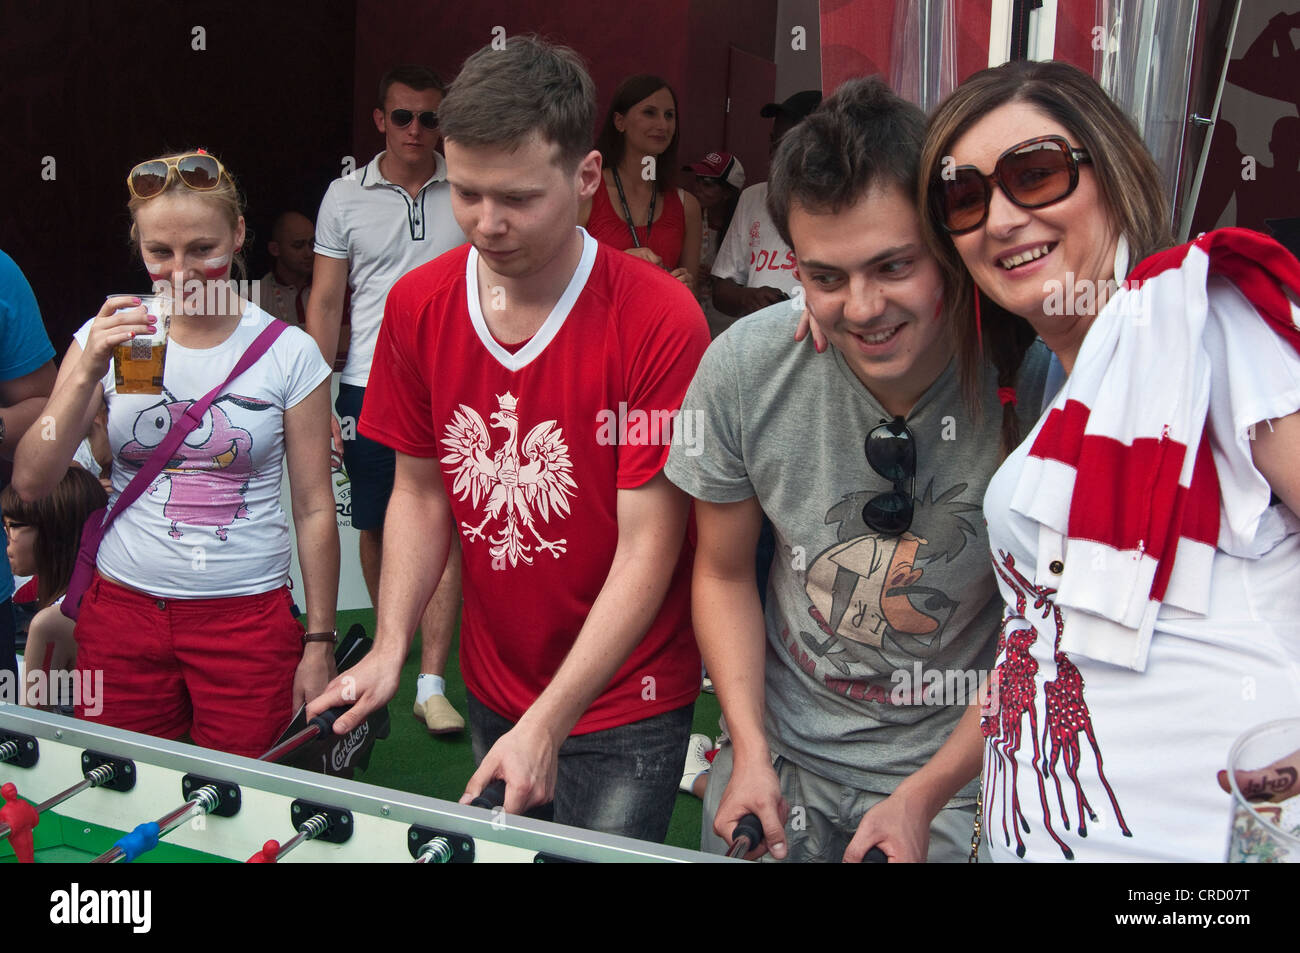 Soccer fans playing table football before watching match during EURO 2012 Football Championship at Fan Zone in Wrocław, - Stock Image